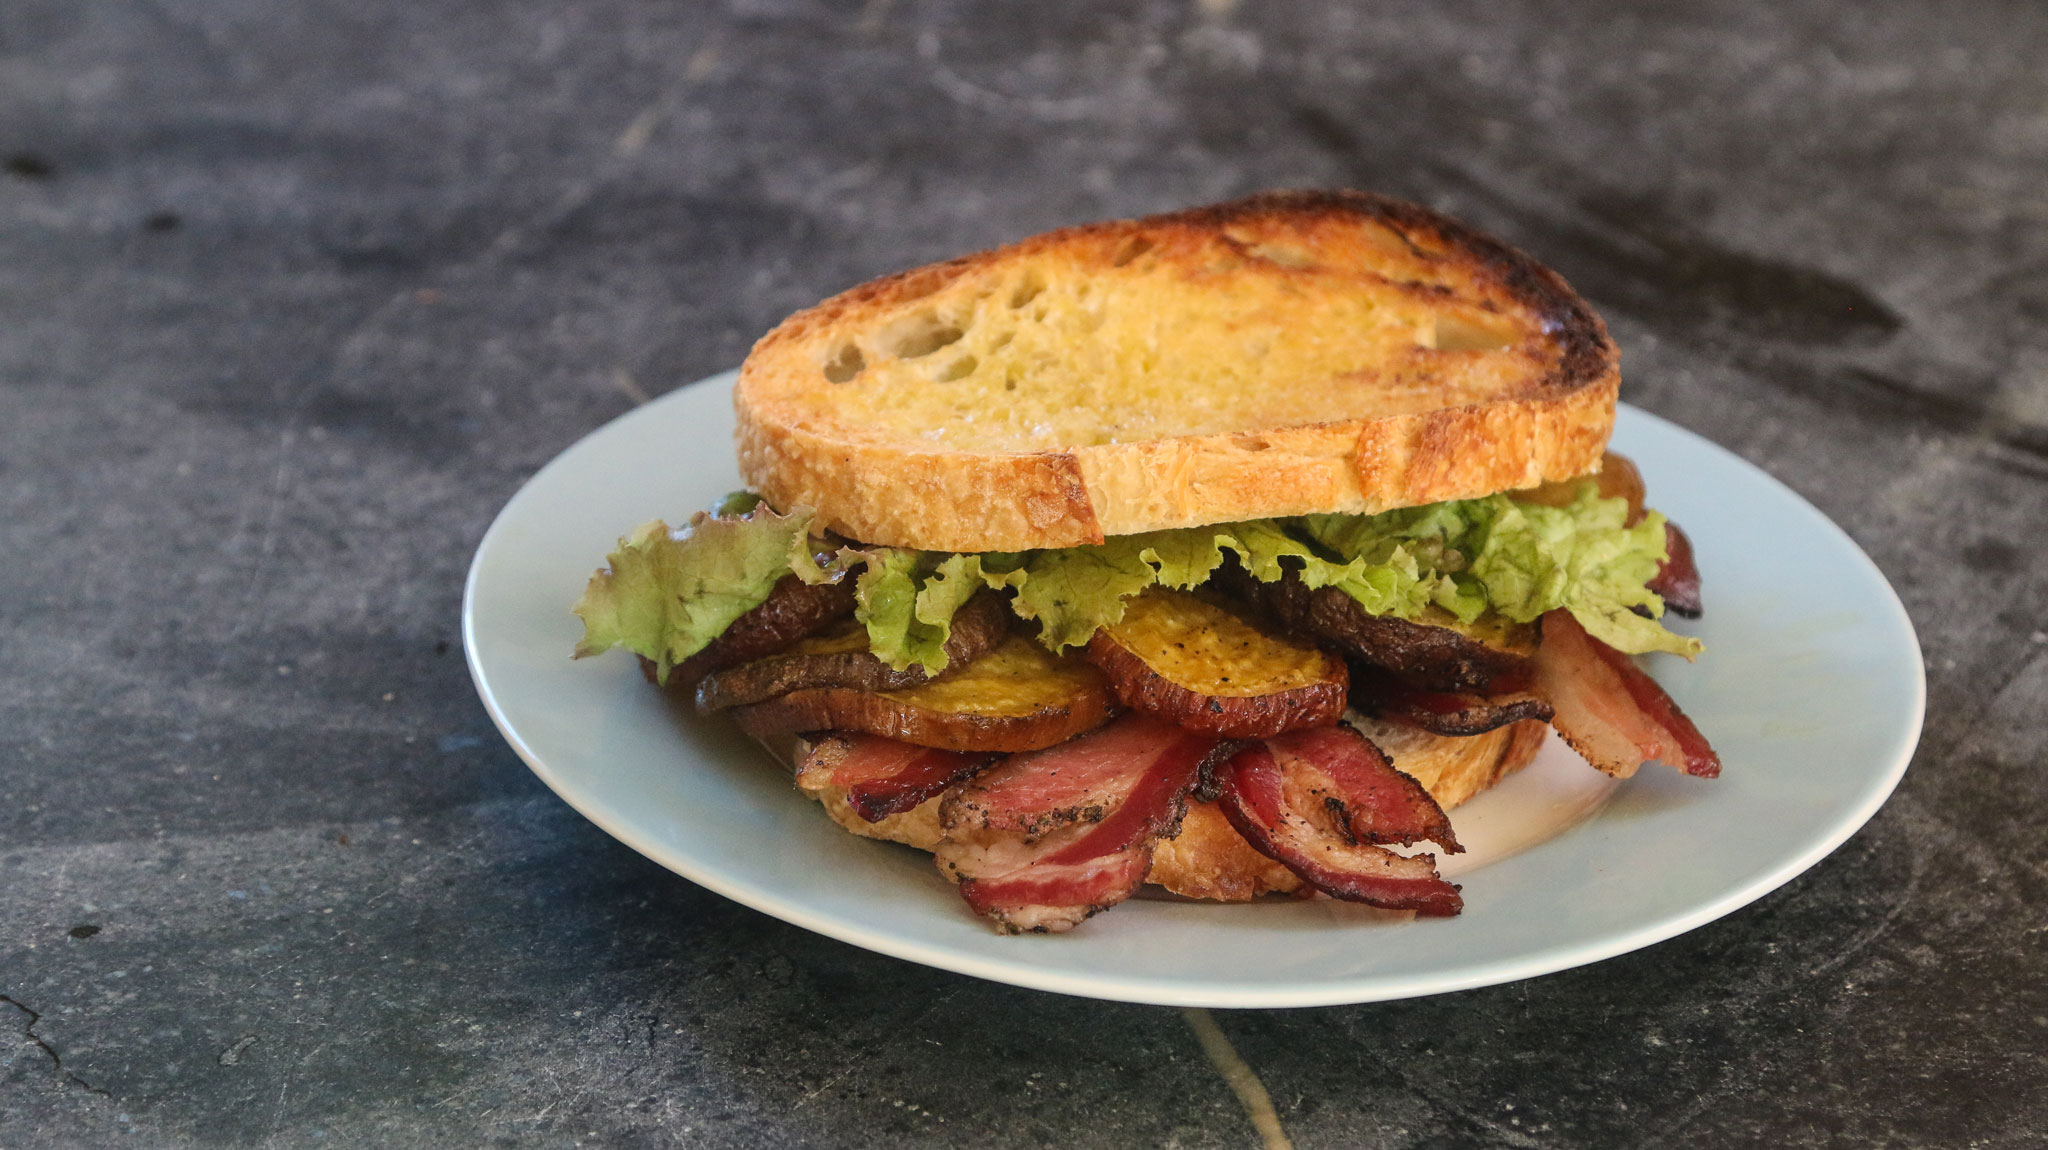 BLB's - Bacon, Lettuce, and Beet Sandwiches Recipe